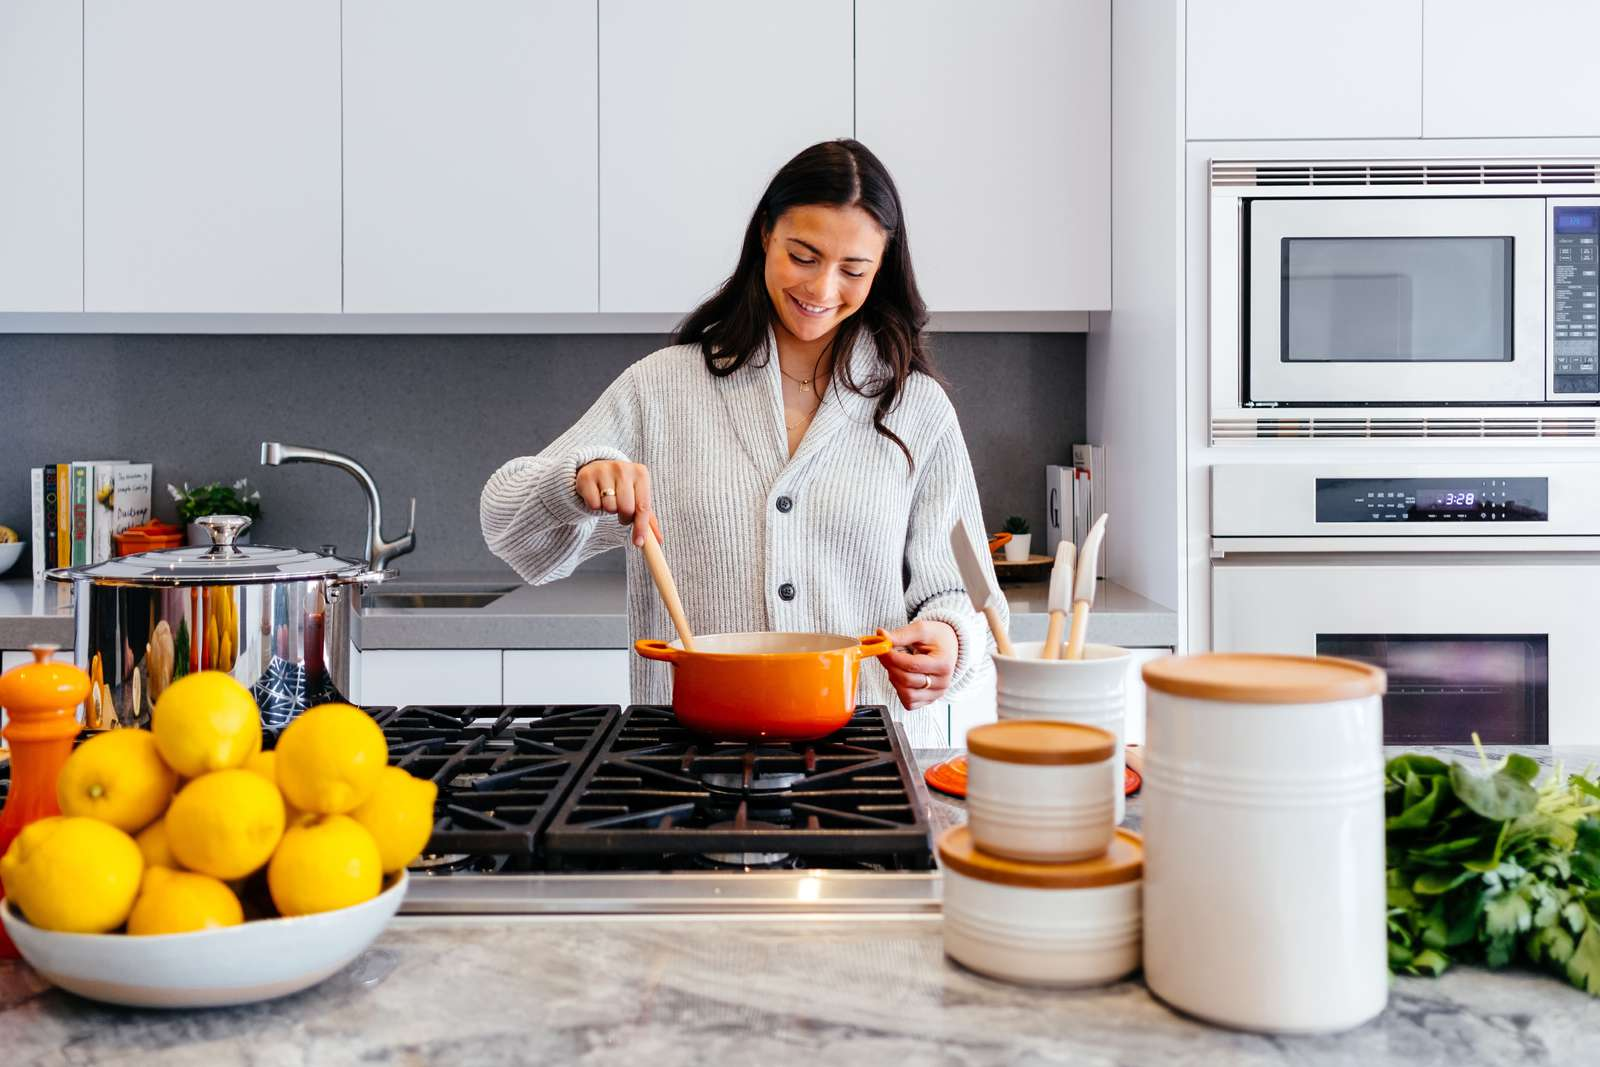 A woman cooking food in an elegant kitchen